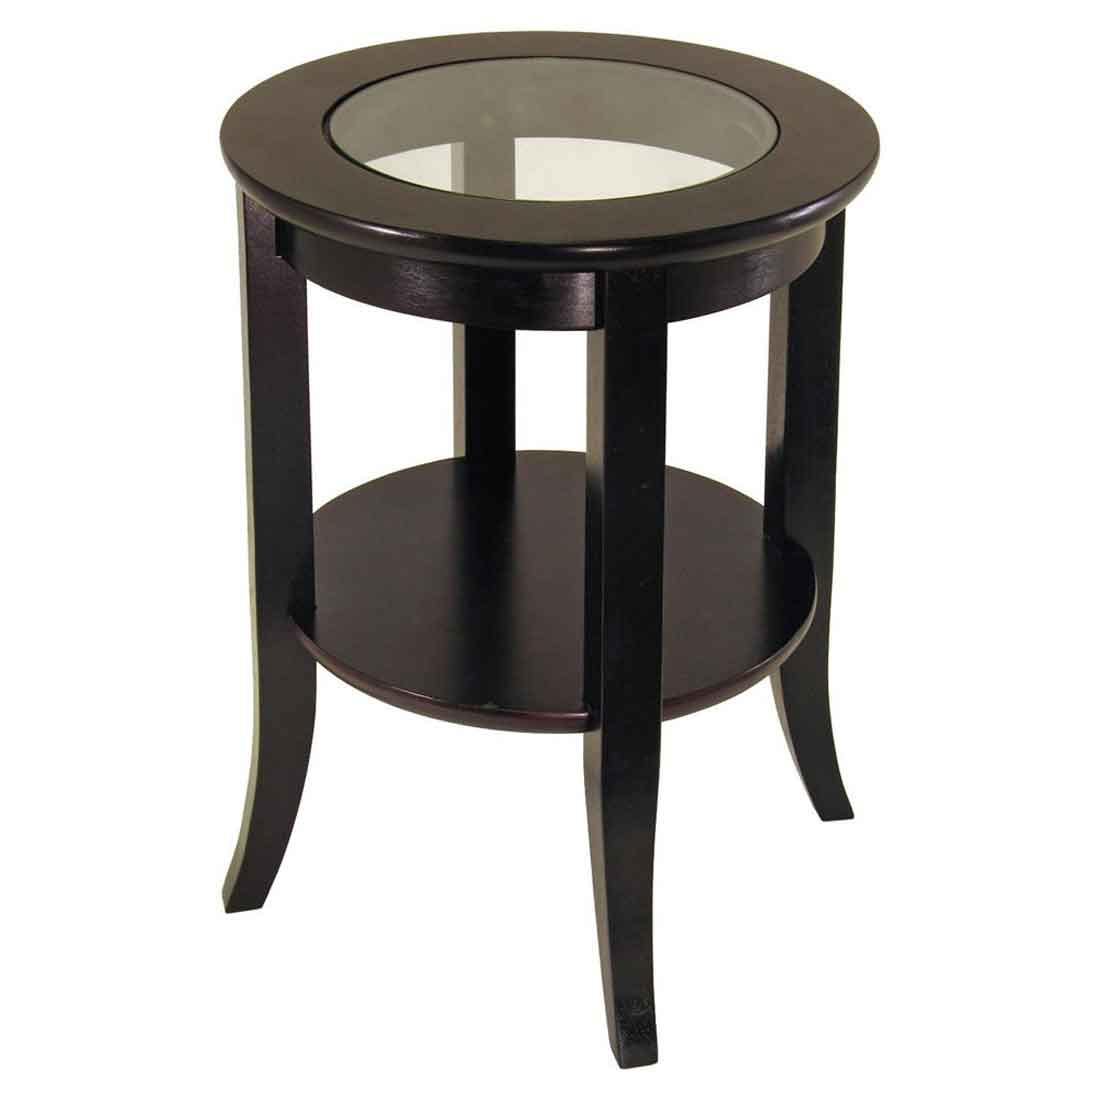 room living target half white metal antique glass table accent black small and base tables plans woodworking pedestal designs furn tablecloth distressed covers end round diy top